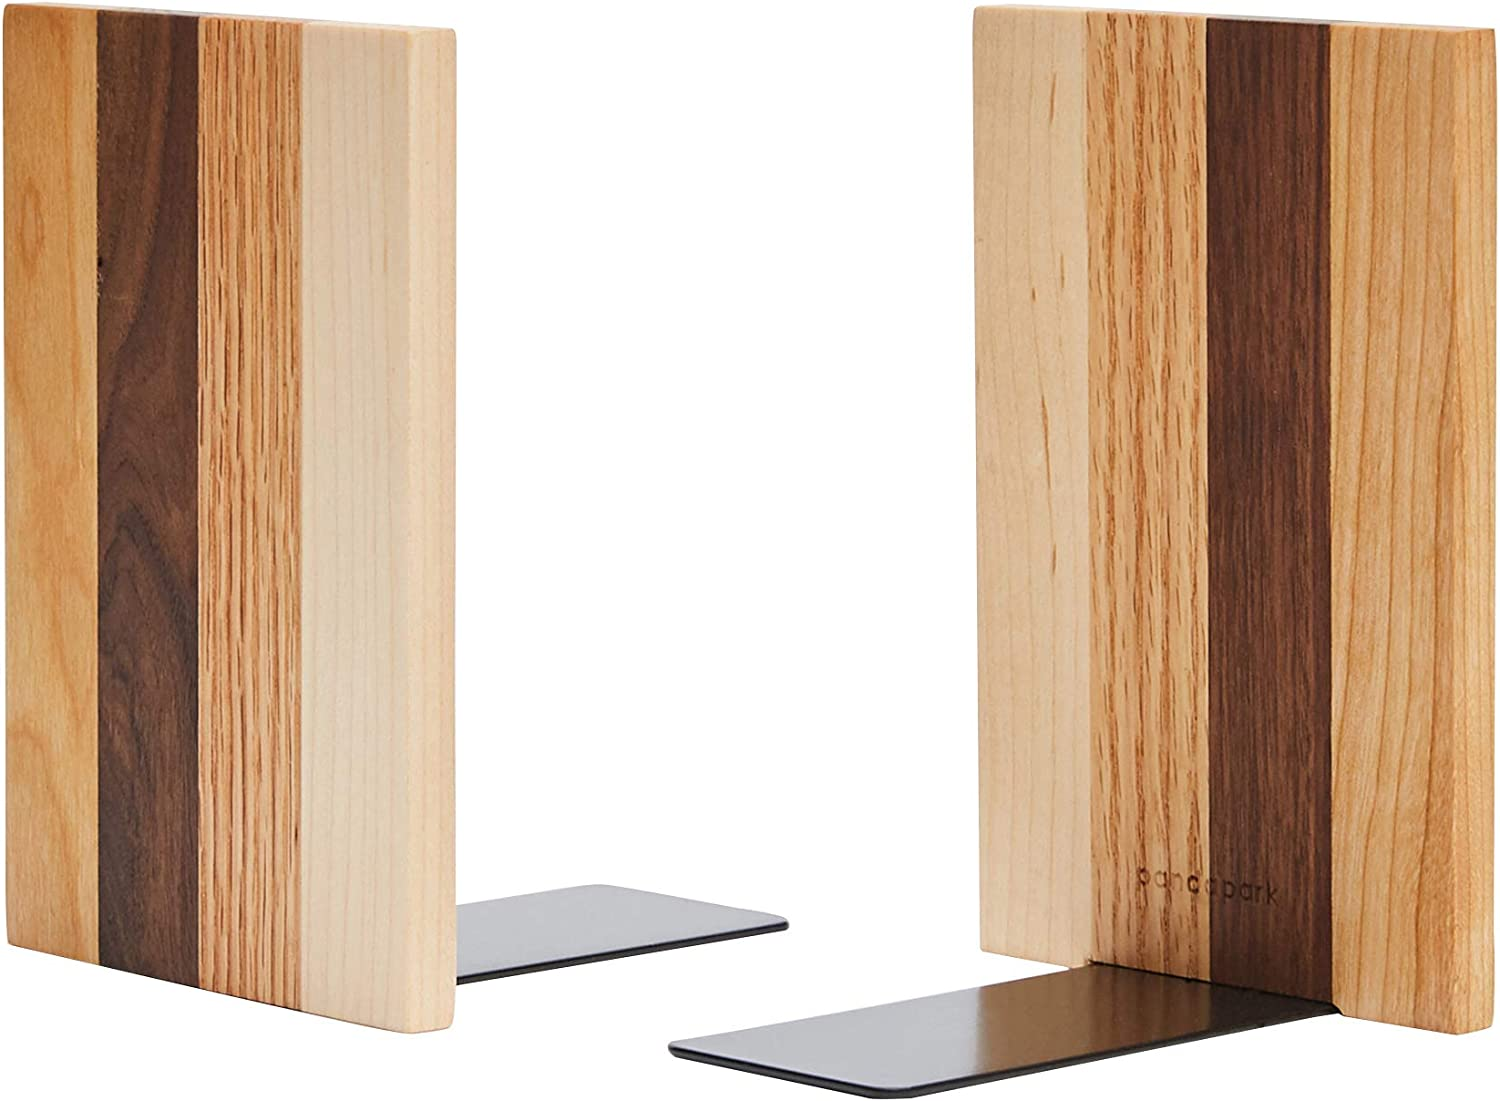 Pandapark Wood Bookends Nature Sale SALE% OFF Selling 6''X4' Decorative Coating Bookend